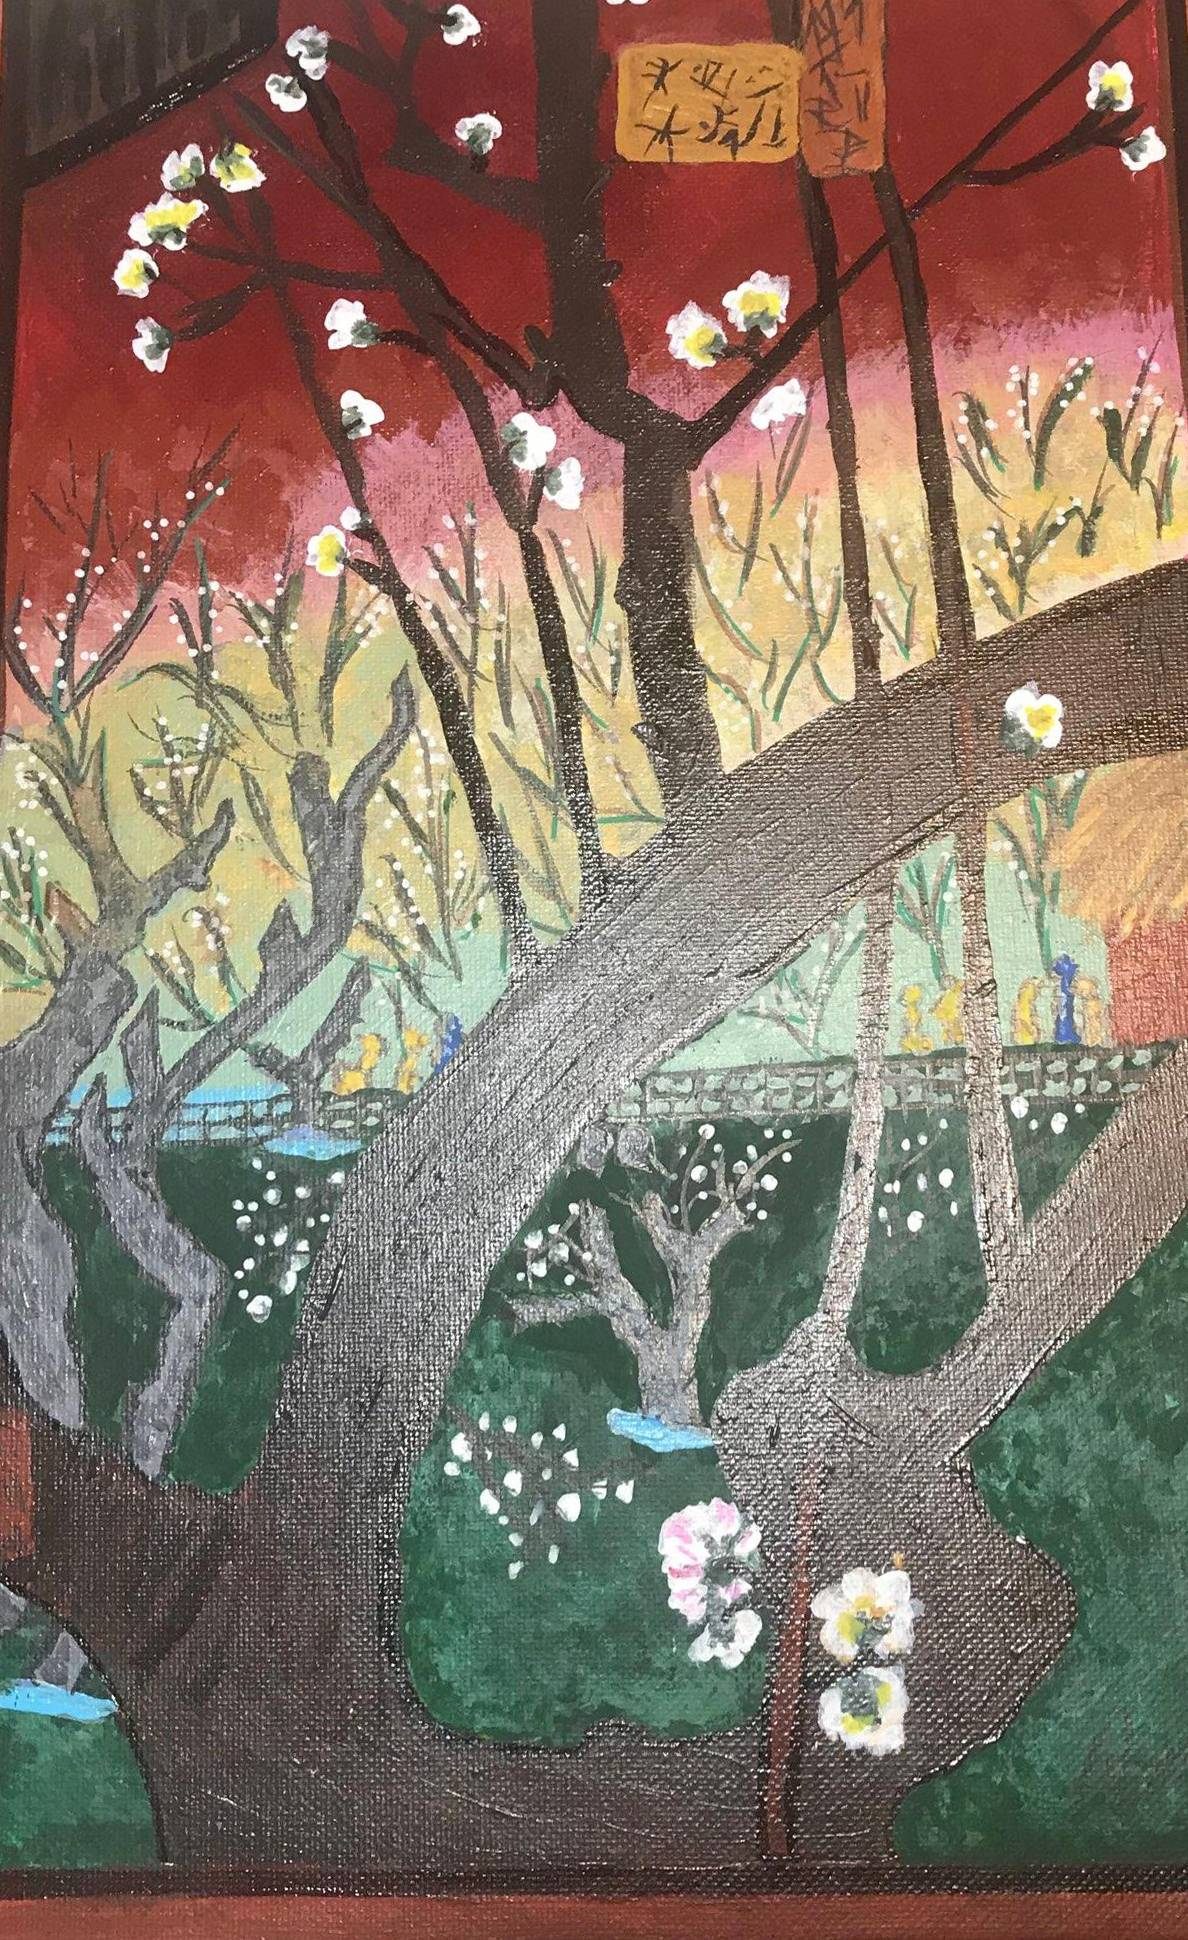 Rendition of Van Gogh's Flowering Plum Orchard after Hiroshige by Rikki